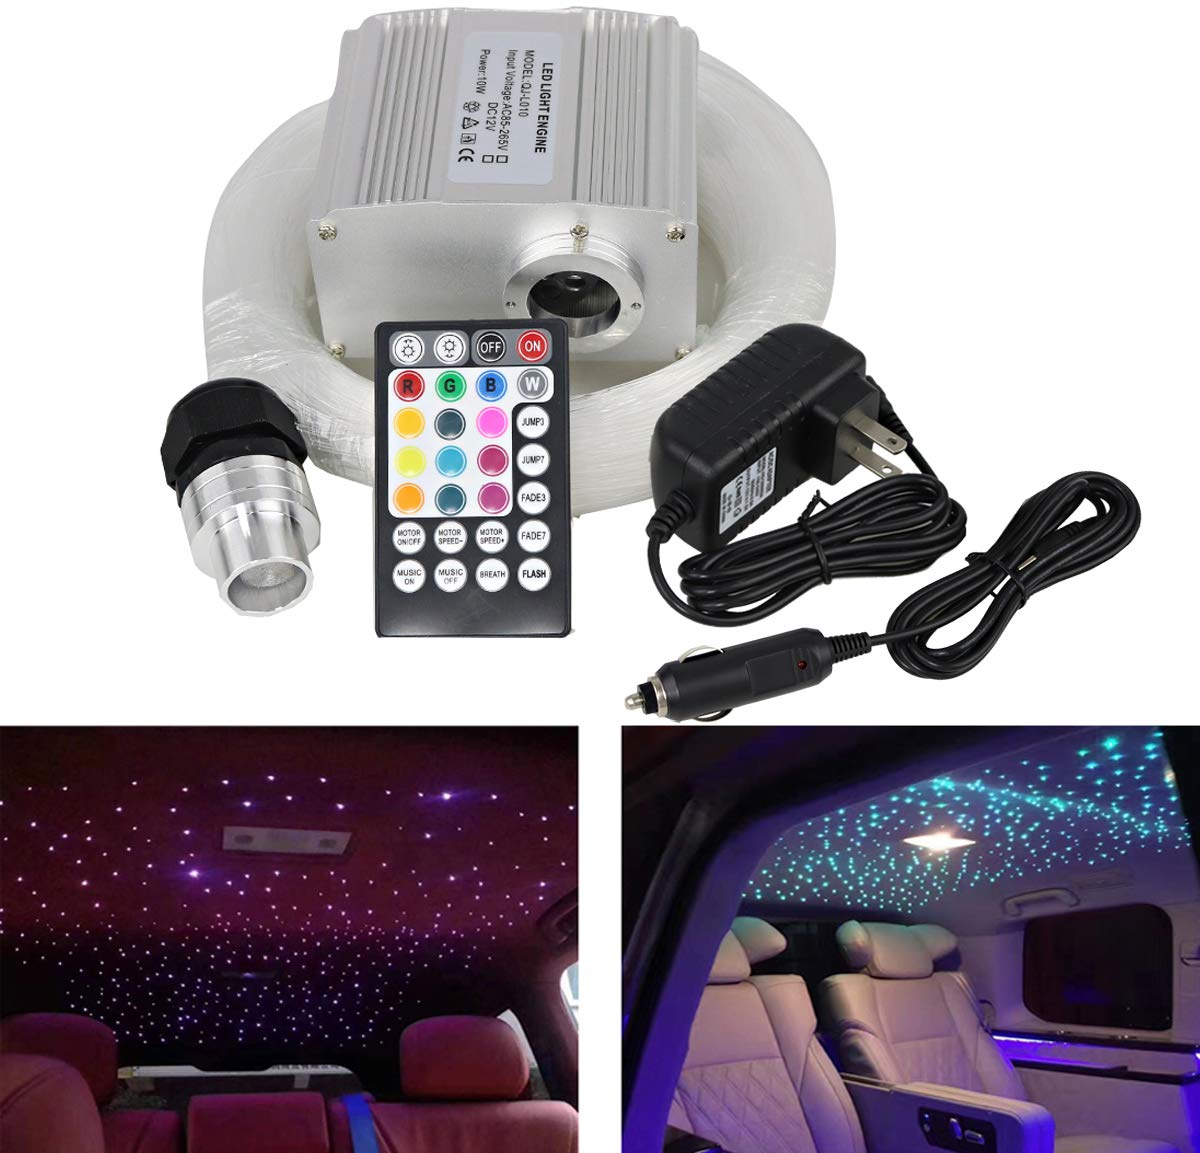 AZIMOM 10W Twinkle RGBW LED Fiber Optic Star Ceiling Light Kit with RF 28 Key Music Control Remote for Indoor Car Interior Decoration 200pcs 6.5ft 0.75mm